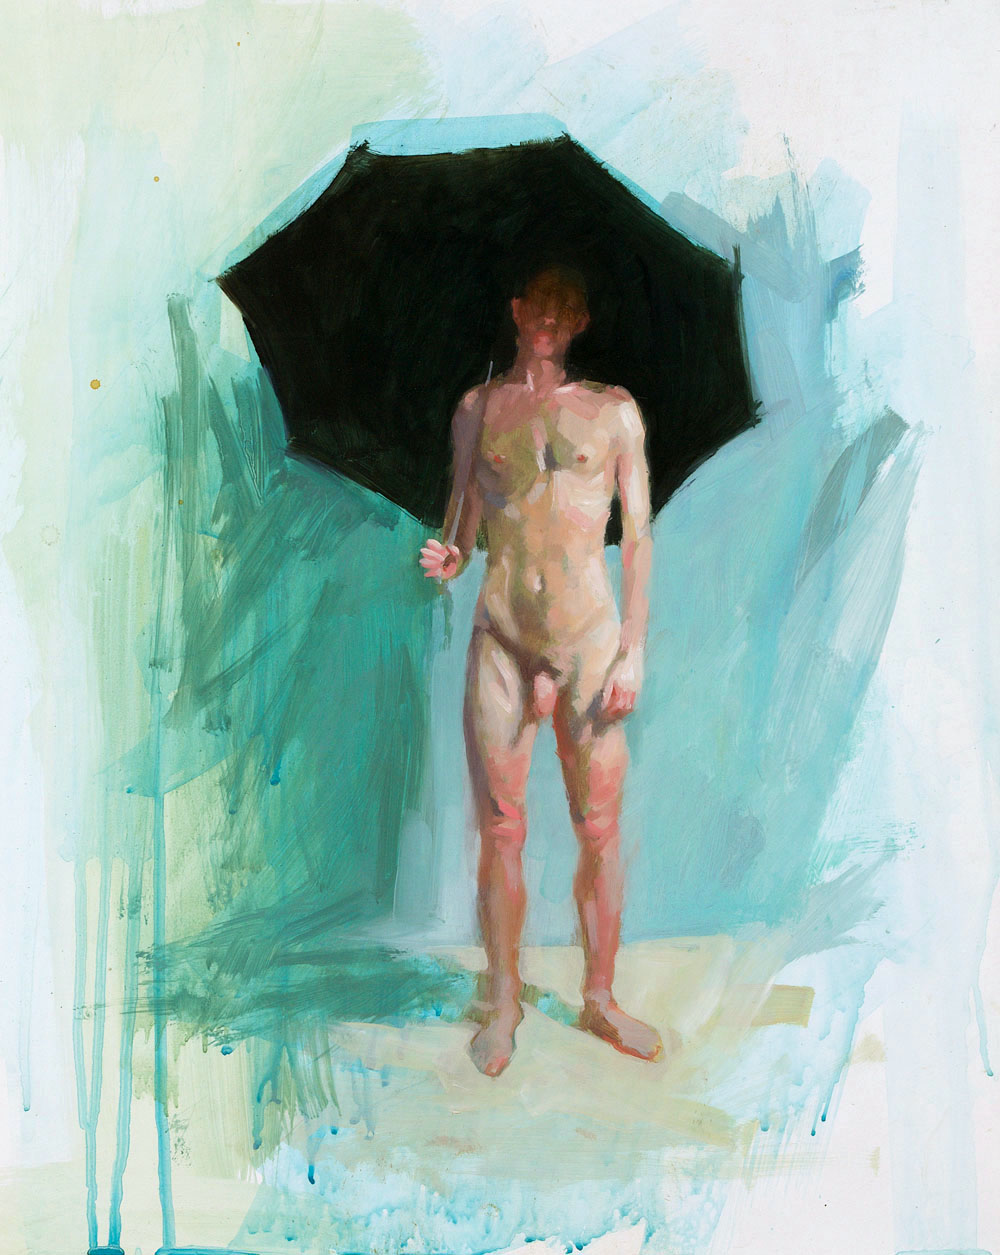 Umbrella Study No. 1   20 x 16 inches  oil on TerraSkin